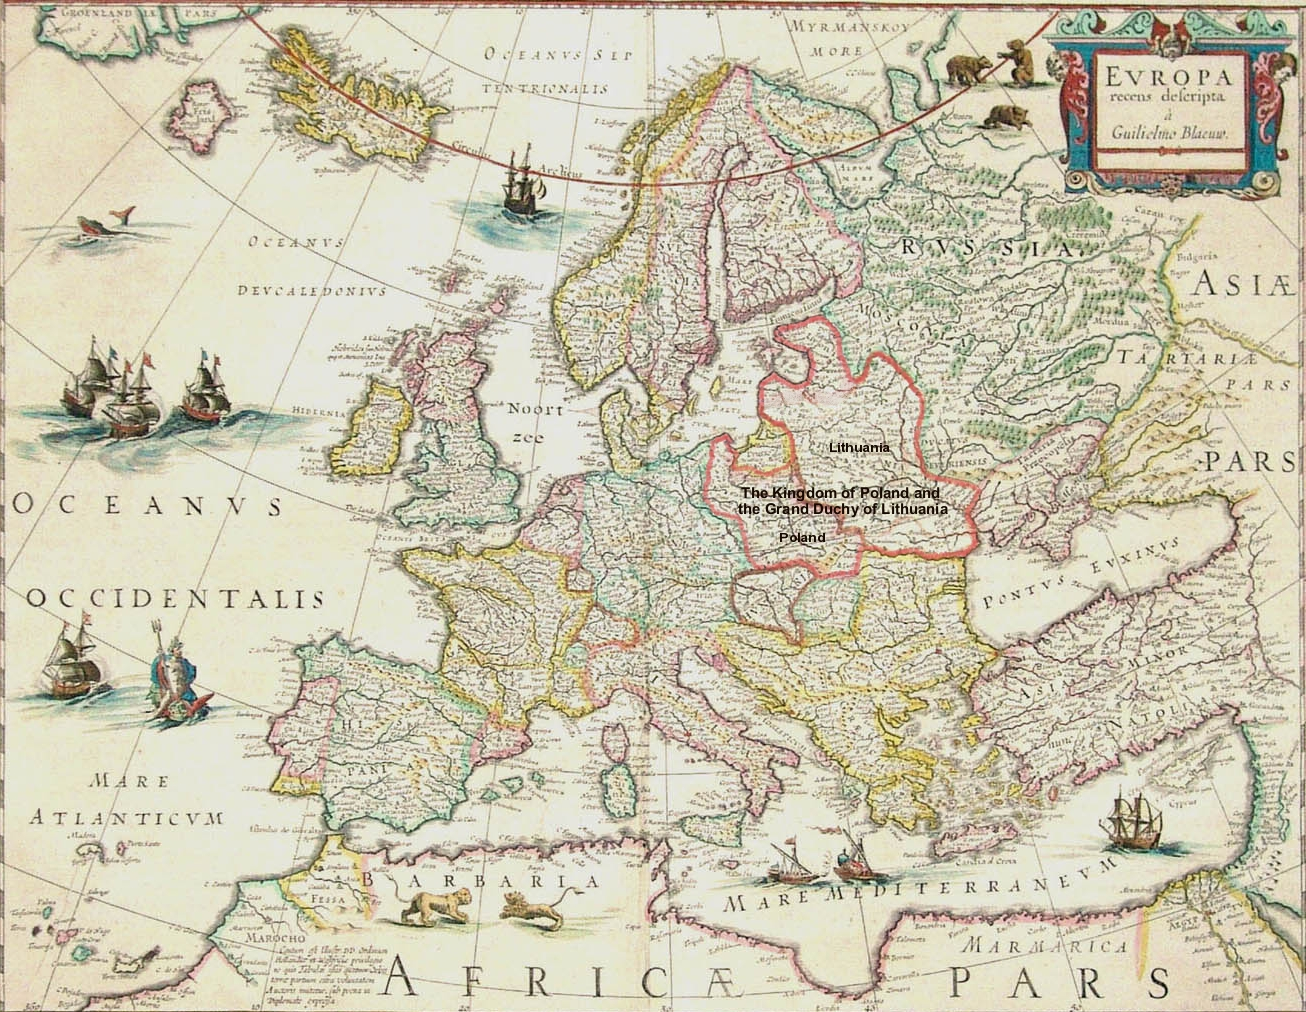 Map Of Europe Showing Poland And Lithuania 1561 1629 1306 X 1012